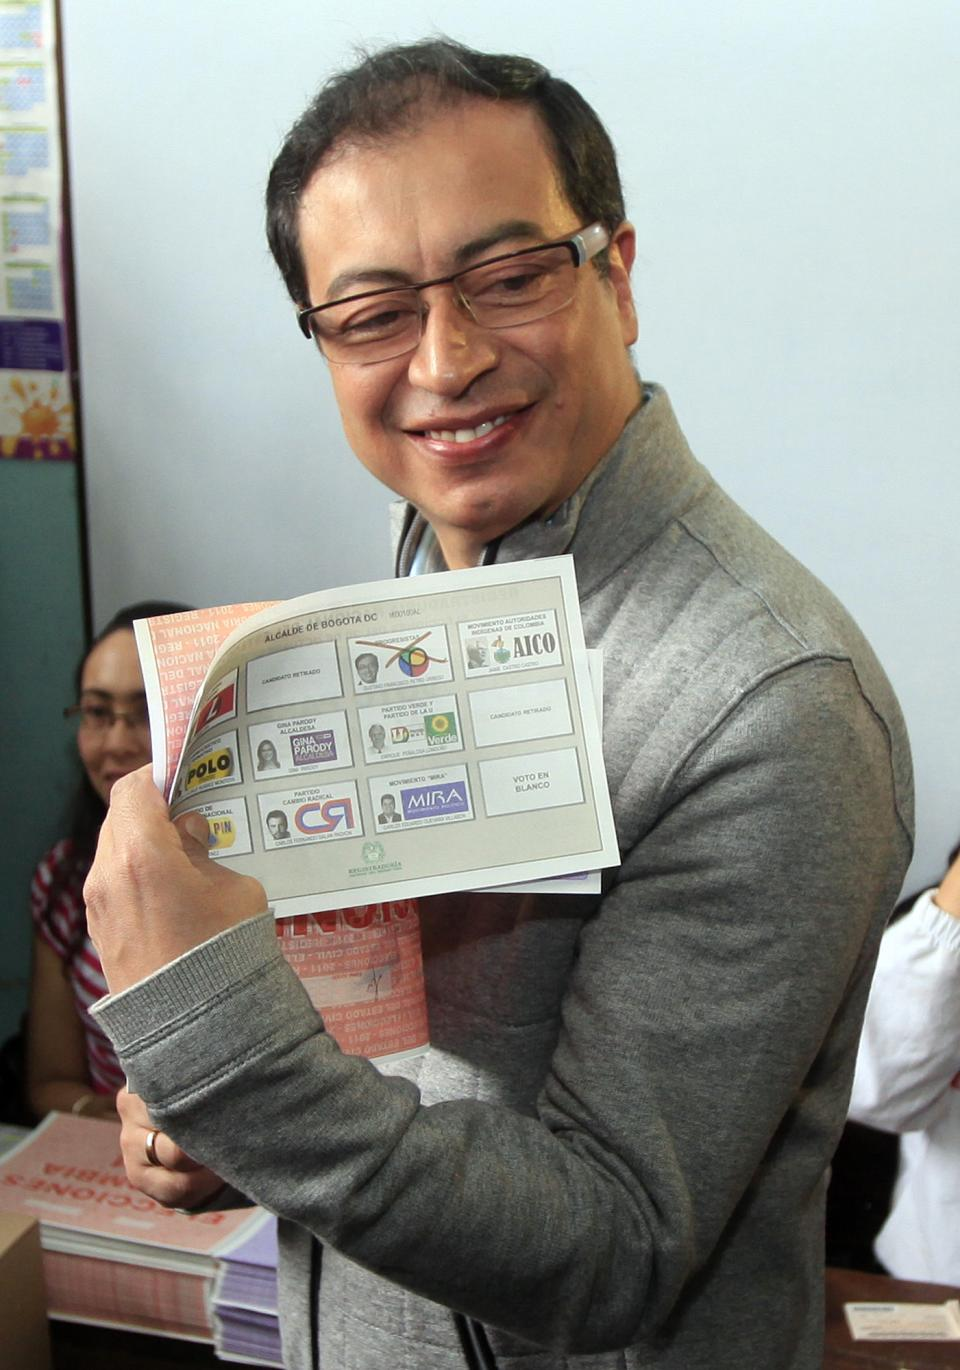 Gustavo Petro, left, Progressive party's candidate for Mayor of Bogota, shows his ballot during local and regional elections in Bogota, Colombia, Sunday, Oct. 30, 2011. Colombians go to the polls Sundays to choose mayors, state governors and local assemblies. (AP Photo/Fernando Vergara)